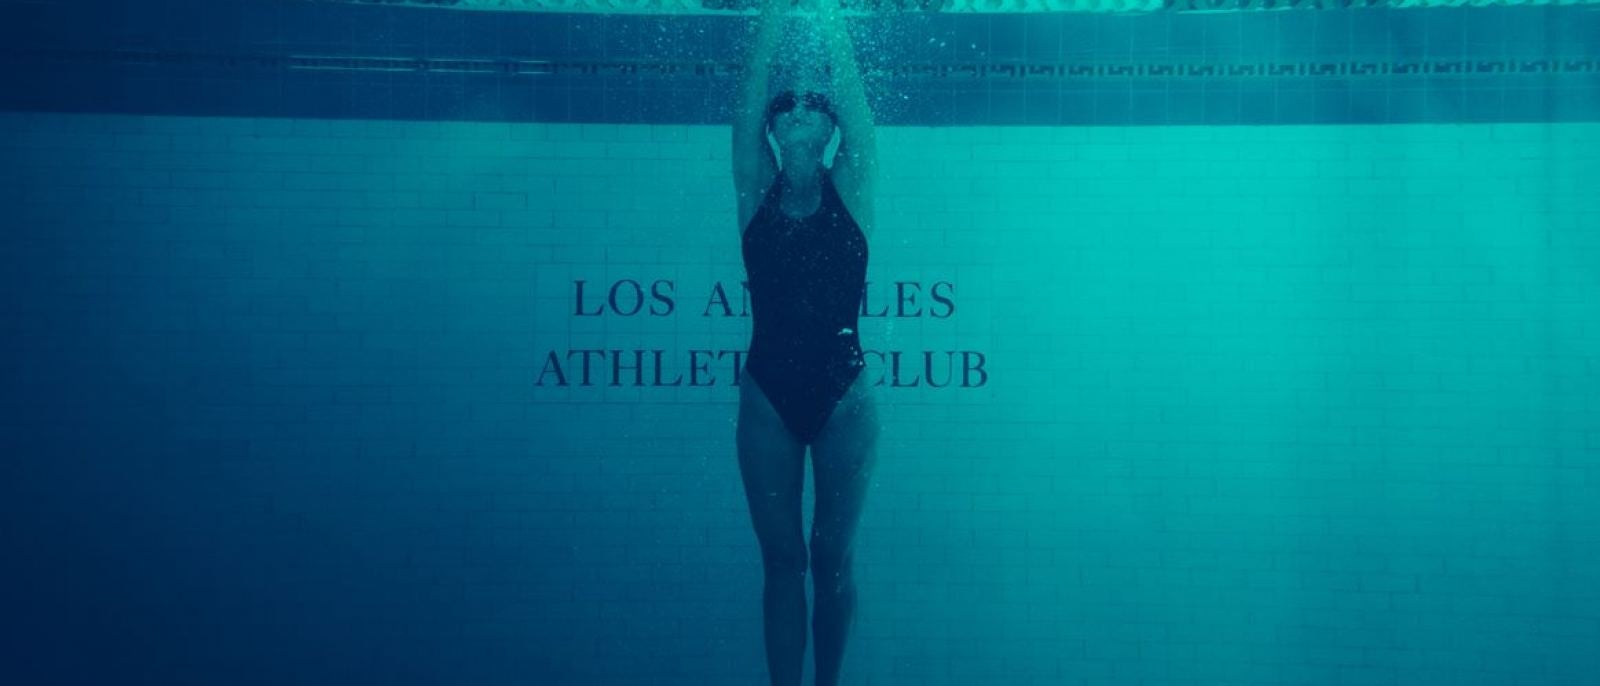 Swimmer at the Los Angeles Athletic Club